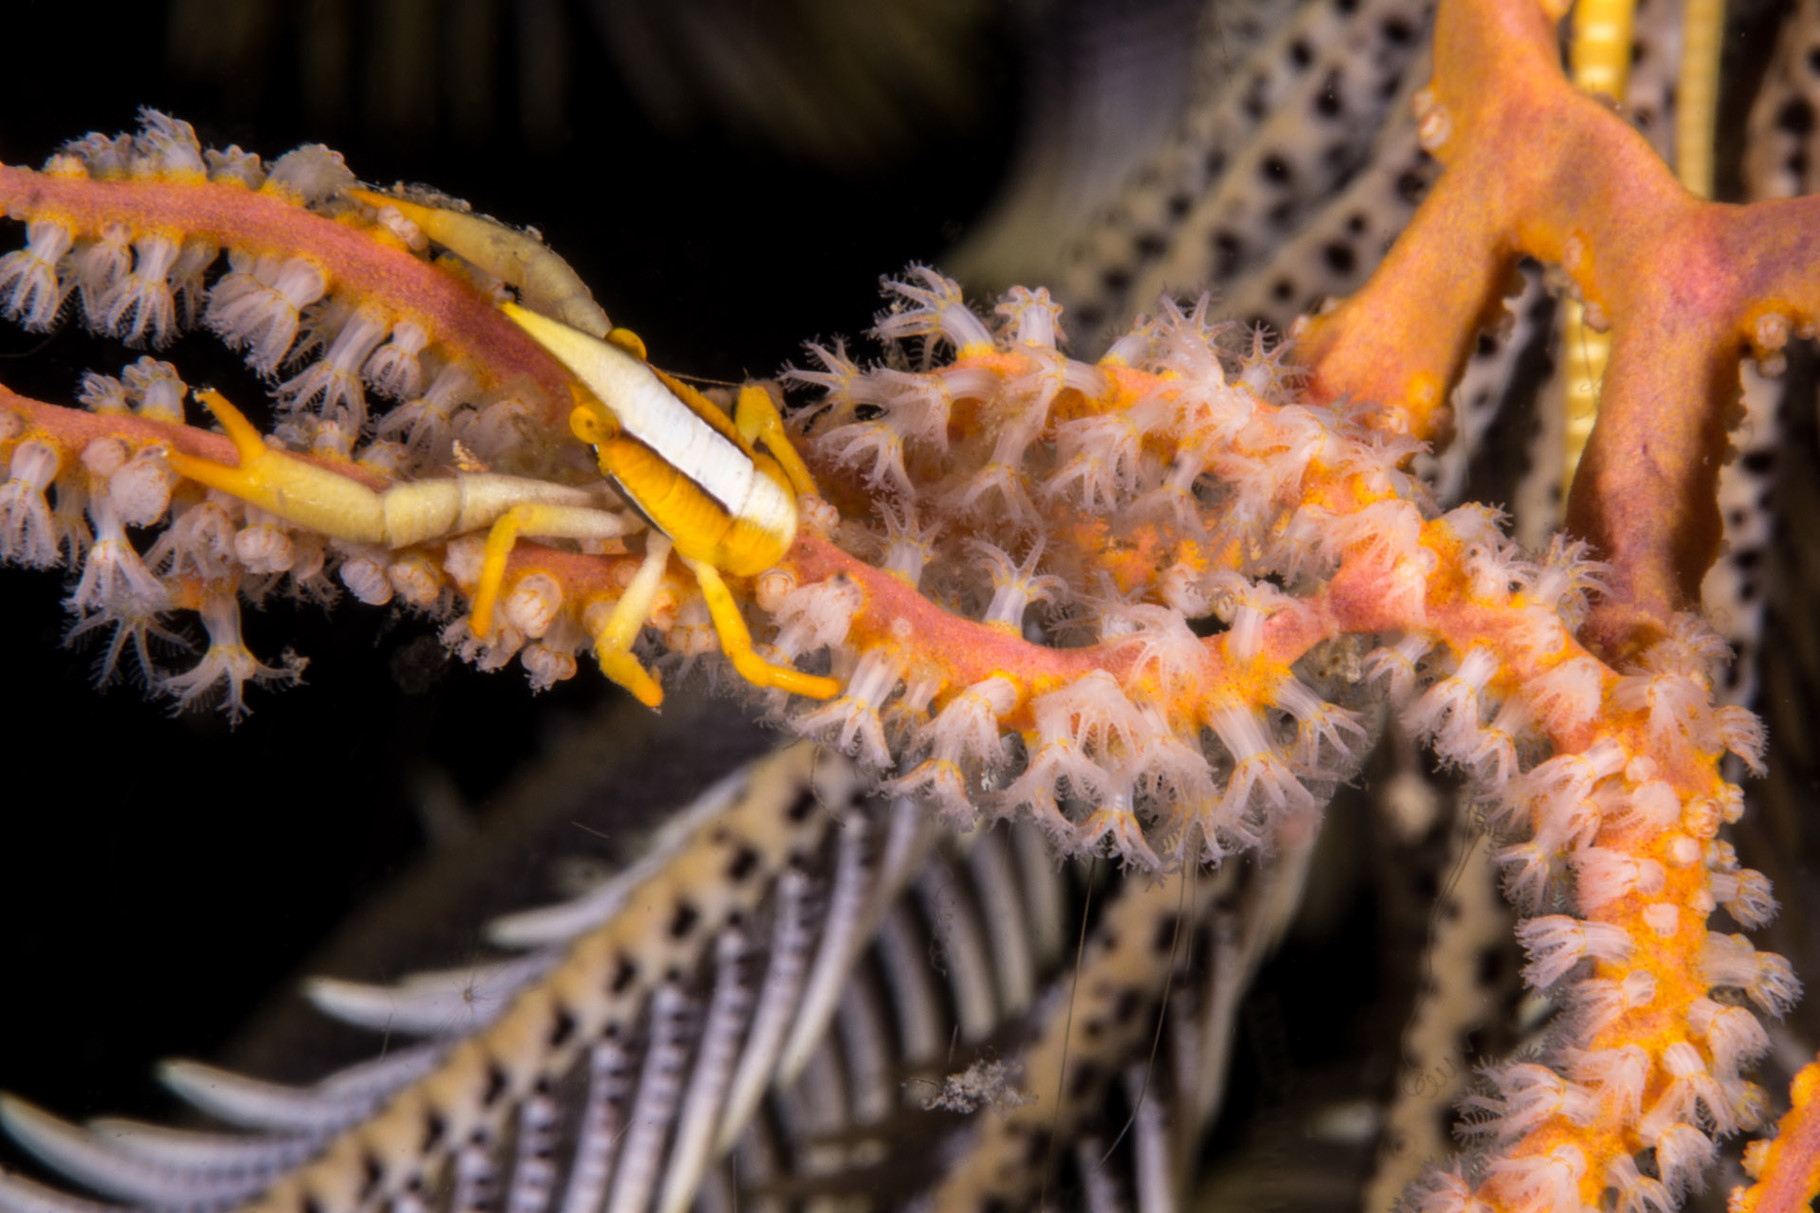 Feather star crab